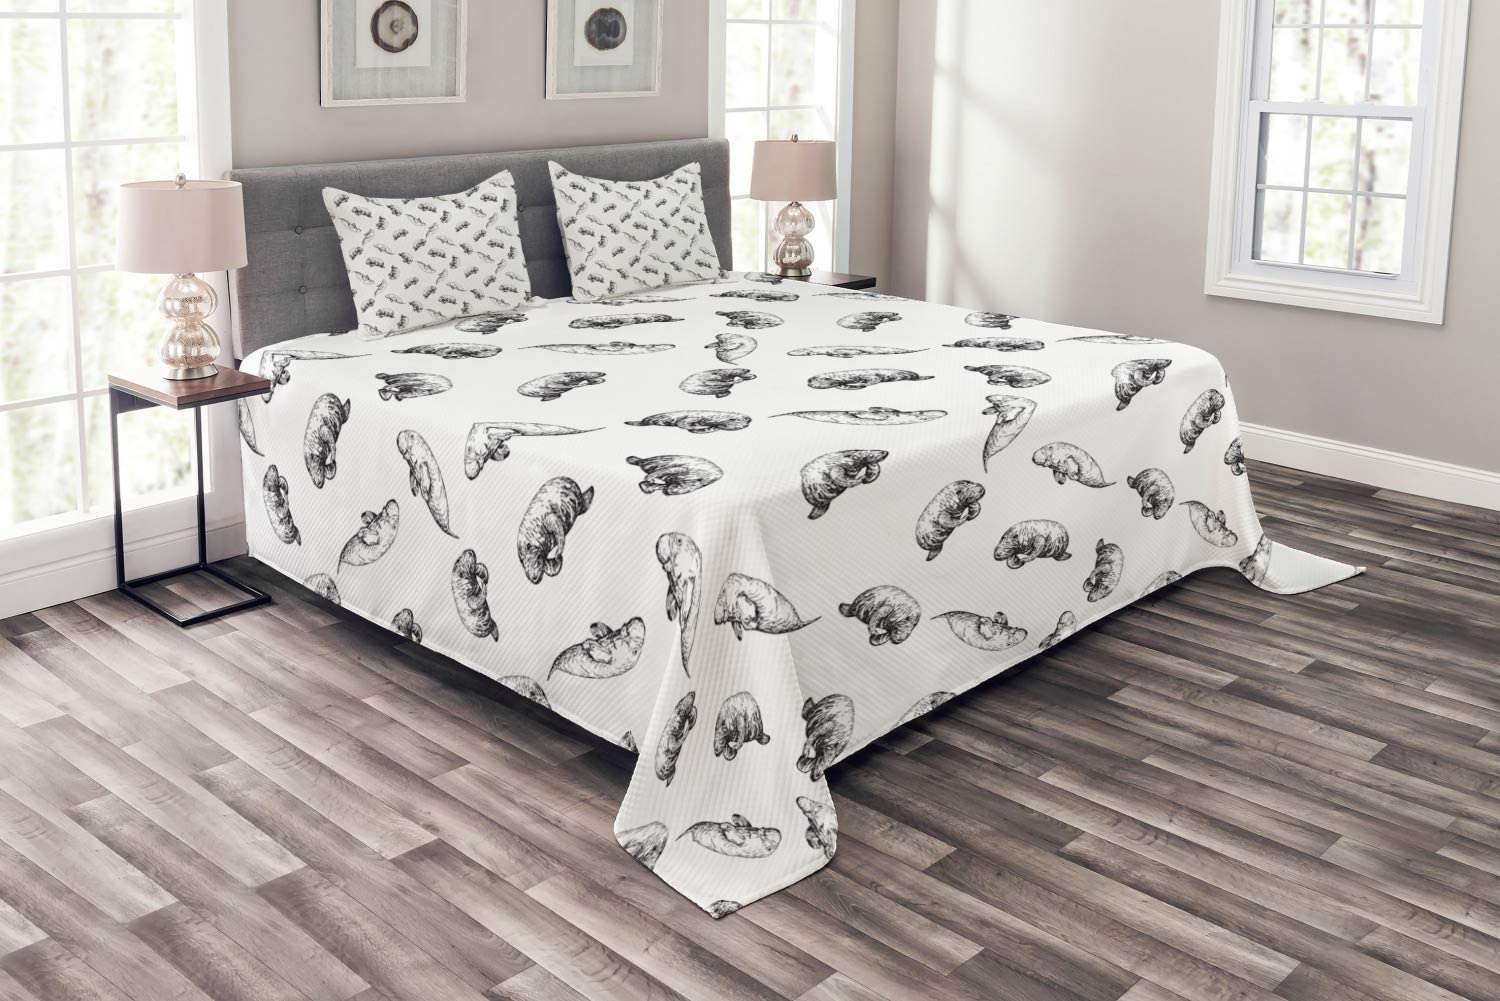 Ambesonne Manatee Bedspread Set Queen Size, Hand Drawn Sketch of Marine Animals Monochromatic Illustration Retro Style, 3 Piece Decorative Quilted Coverlet with 2 Pillow Shams, Charcoal Grey White